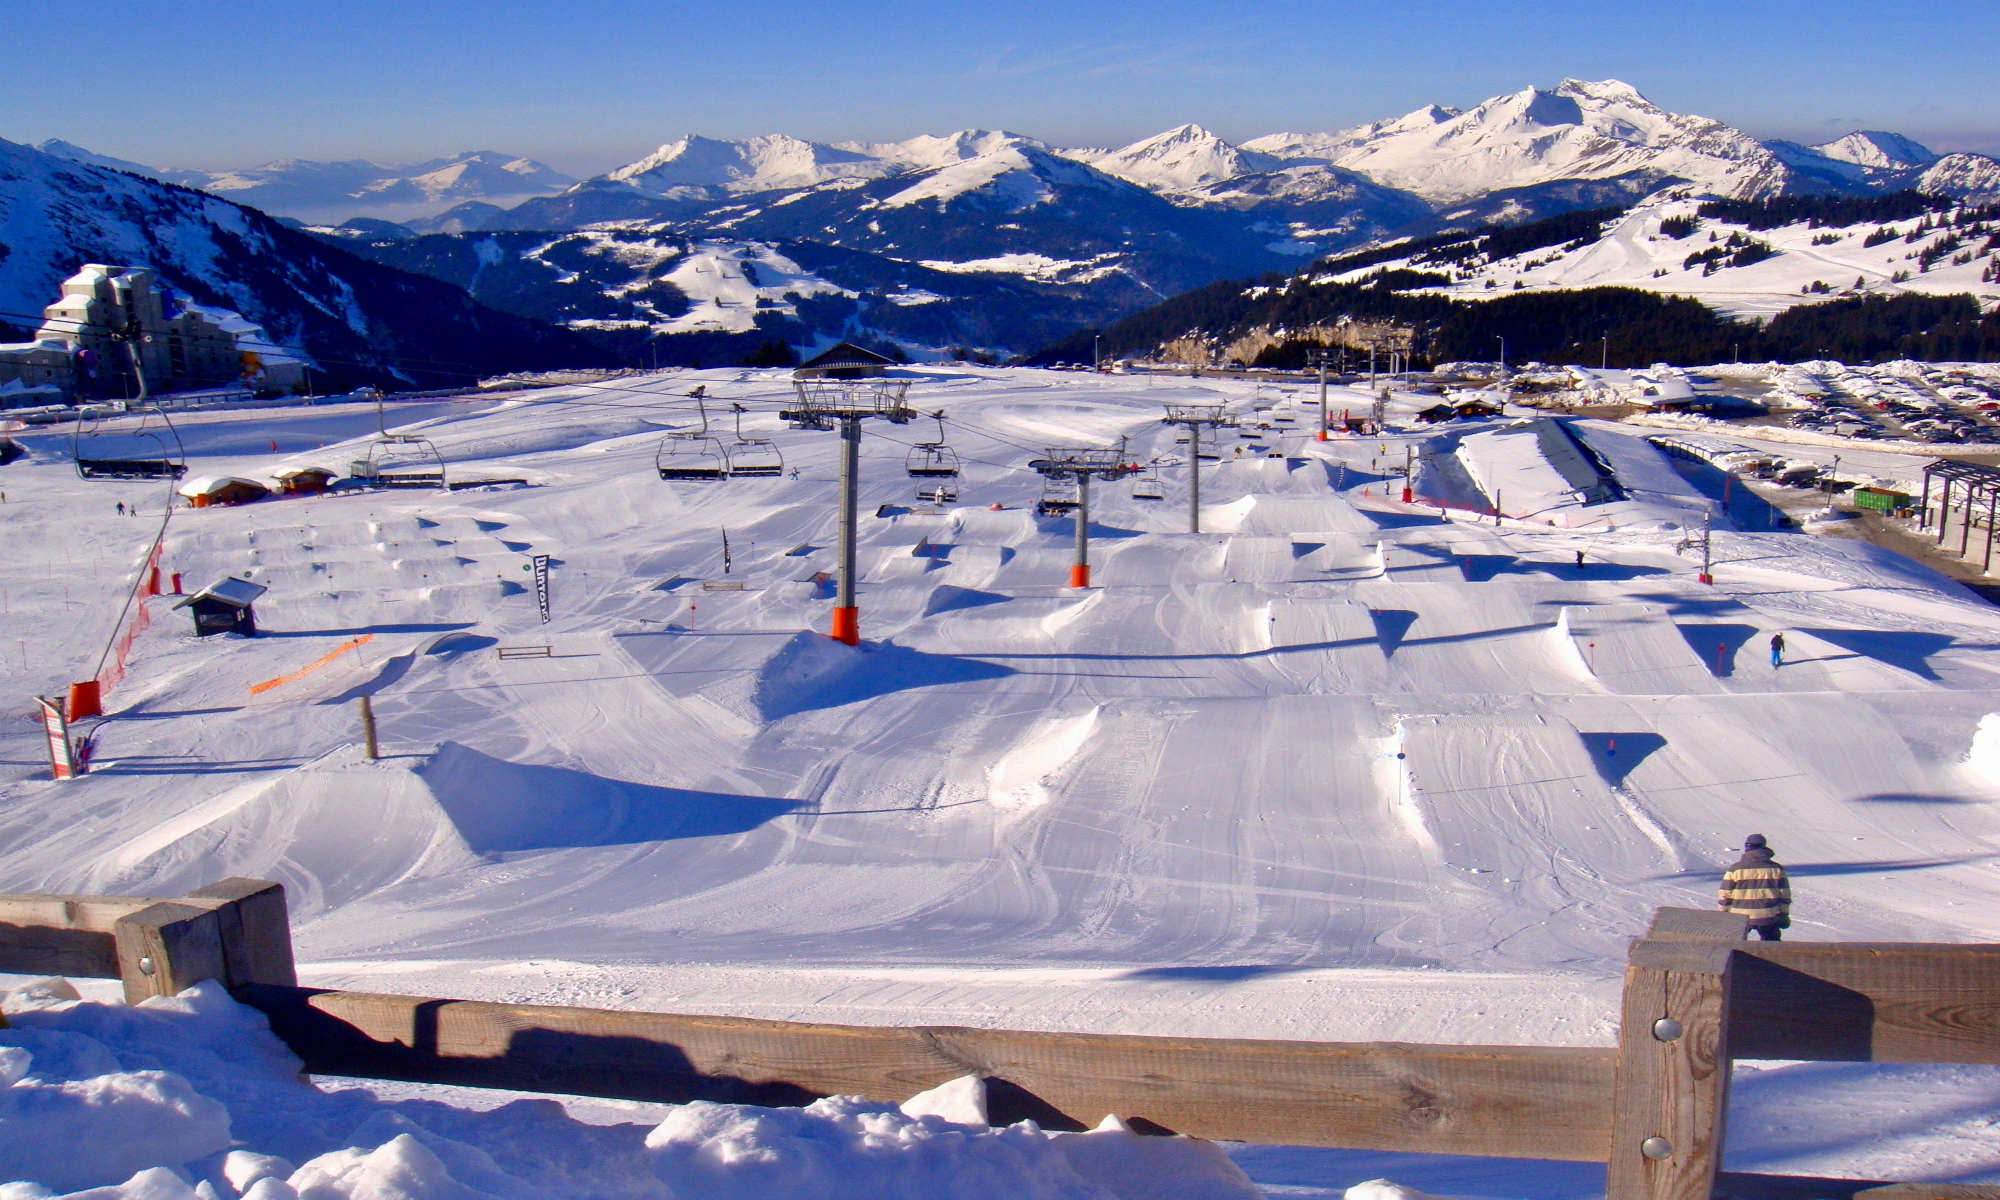 View over one of the 7 snowparks in Avoriaz.